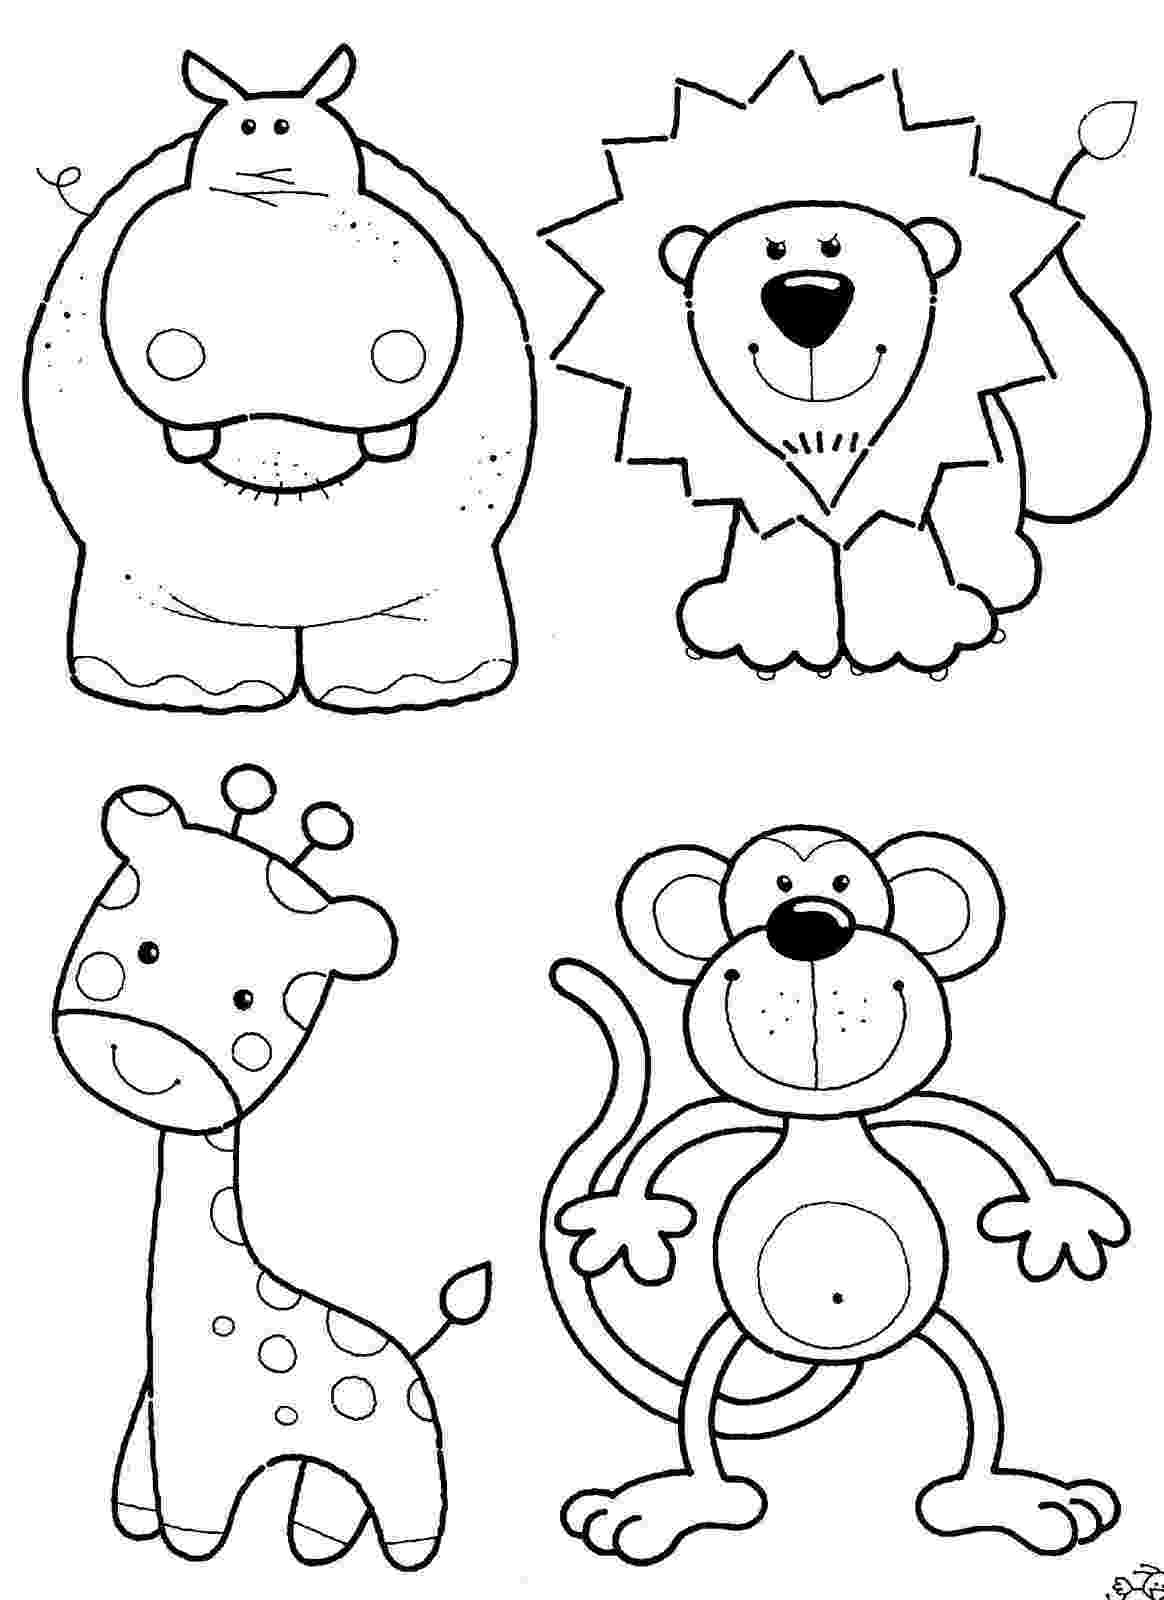 animal coloring pages printable coloring ville coloring animal pages printable